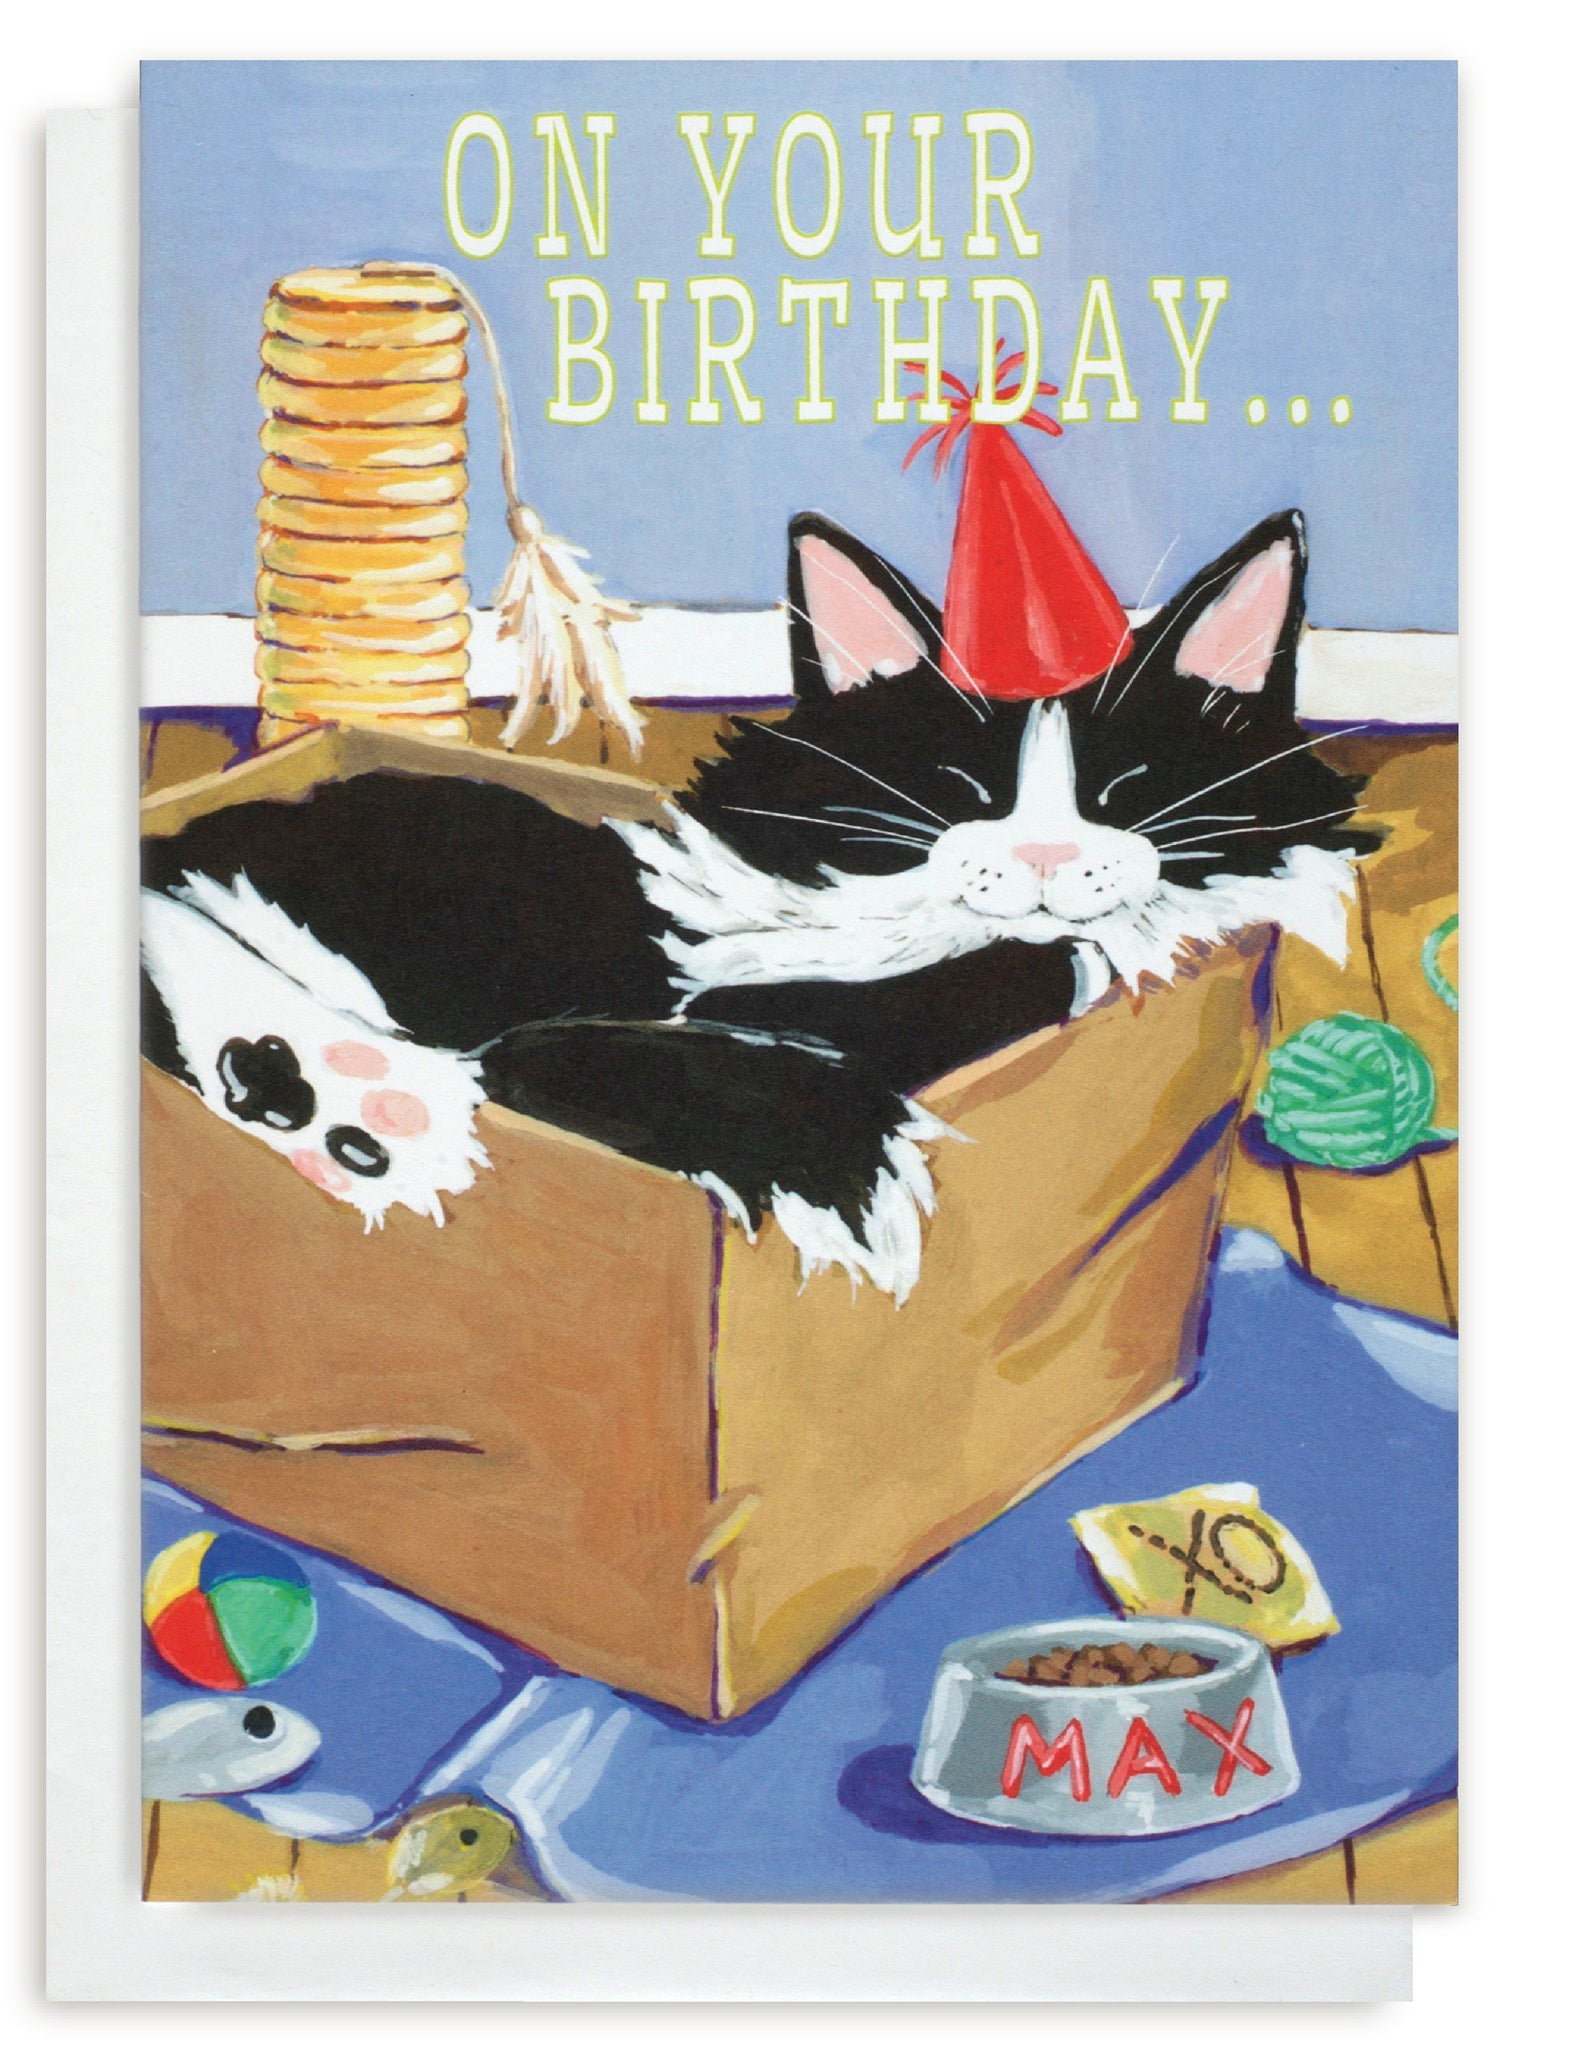 Birthday card of a Tuxedo Cat Cat napping in a Box surrounded by cat treats